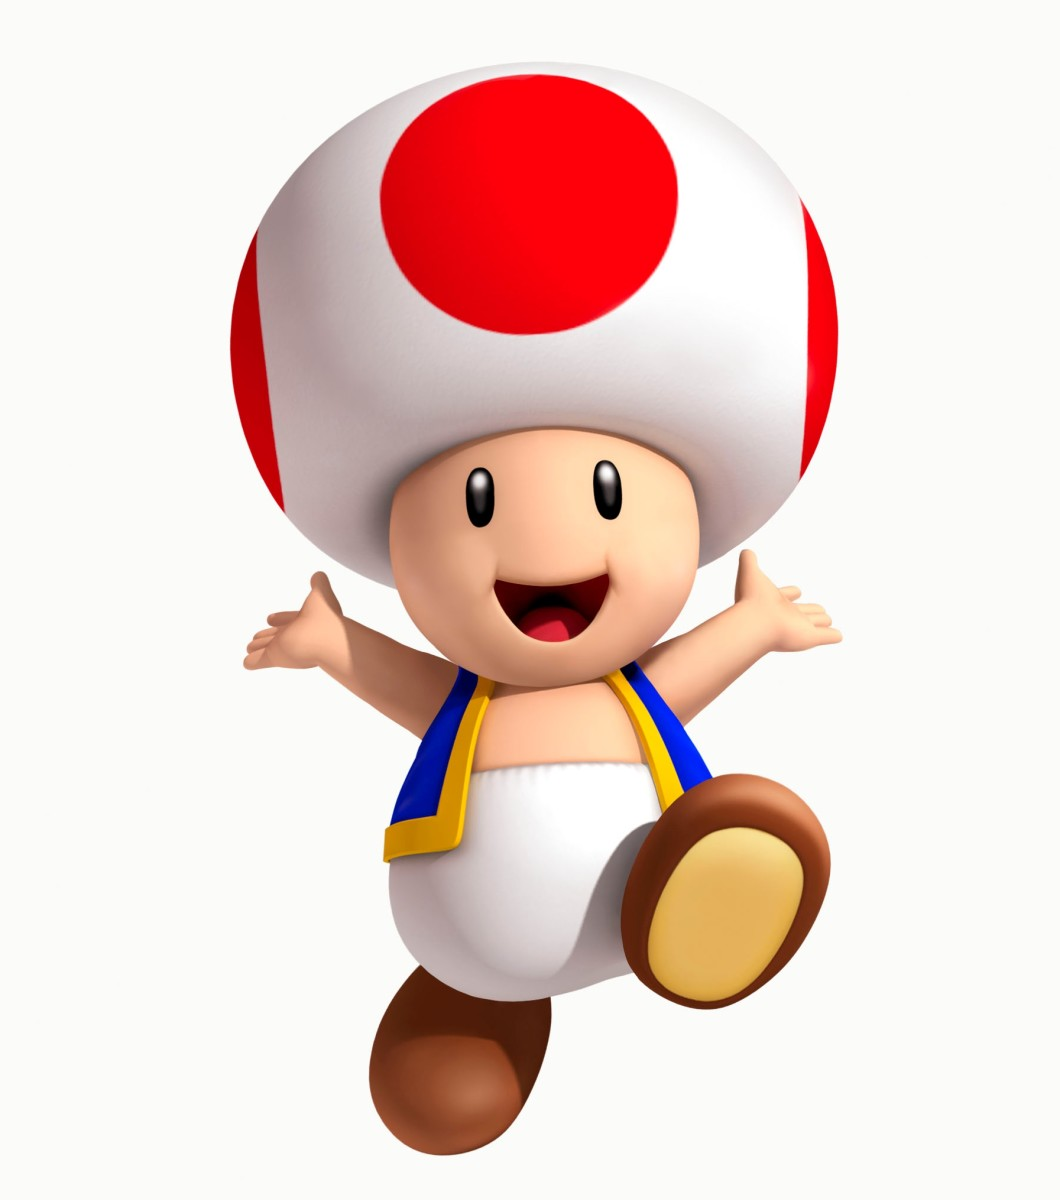 Super Mario Bros. characters who deserve their own game